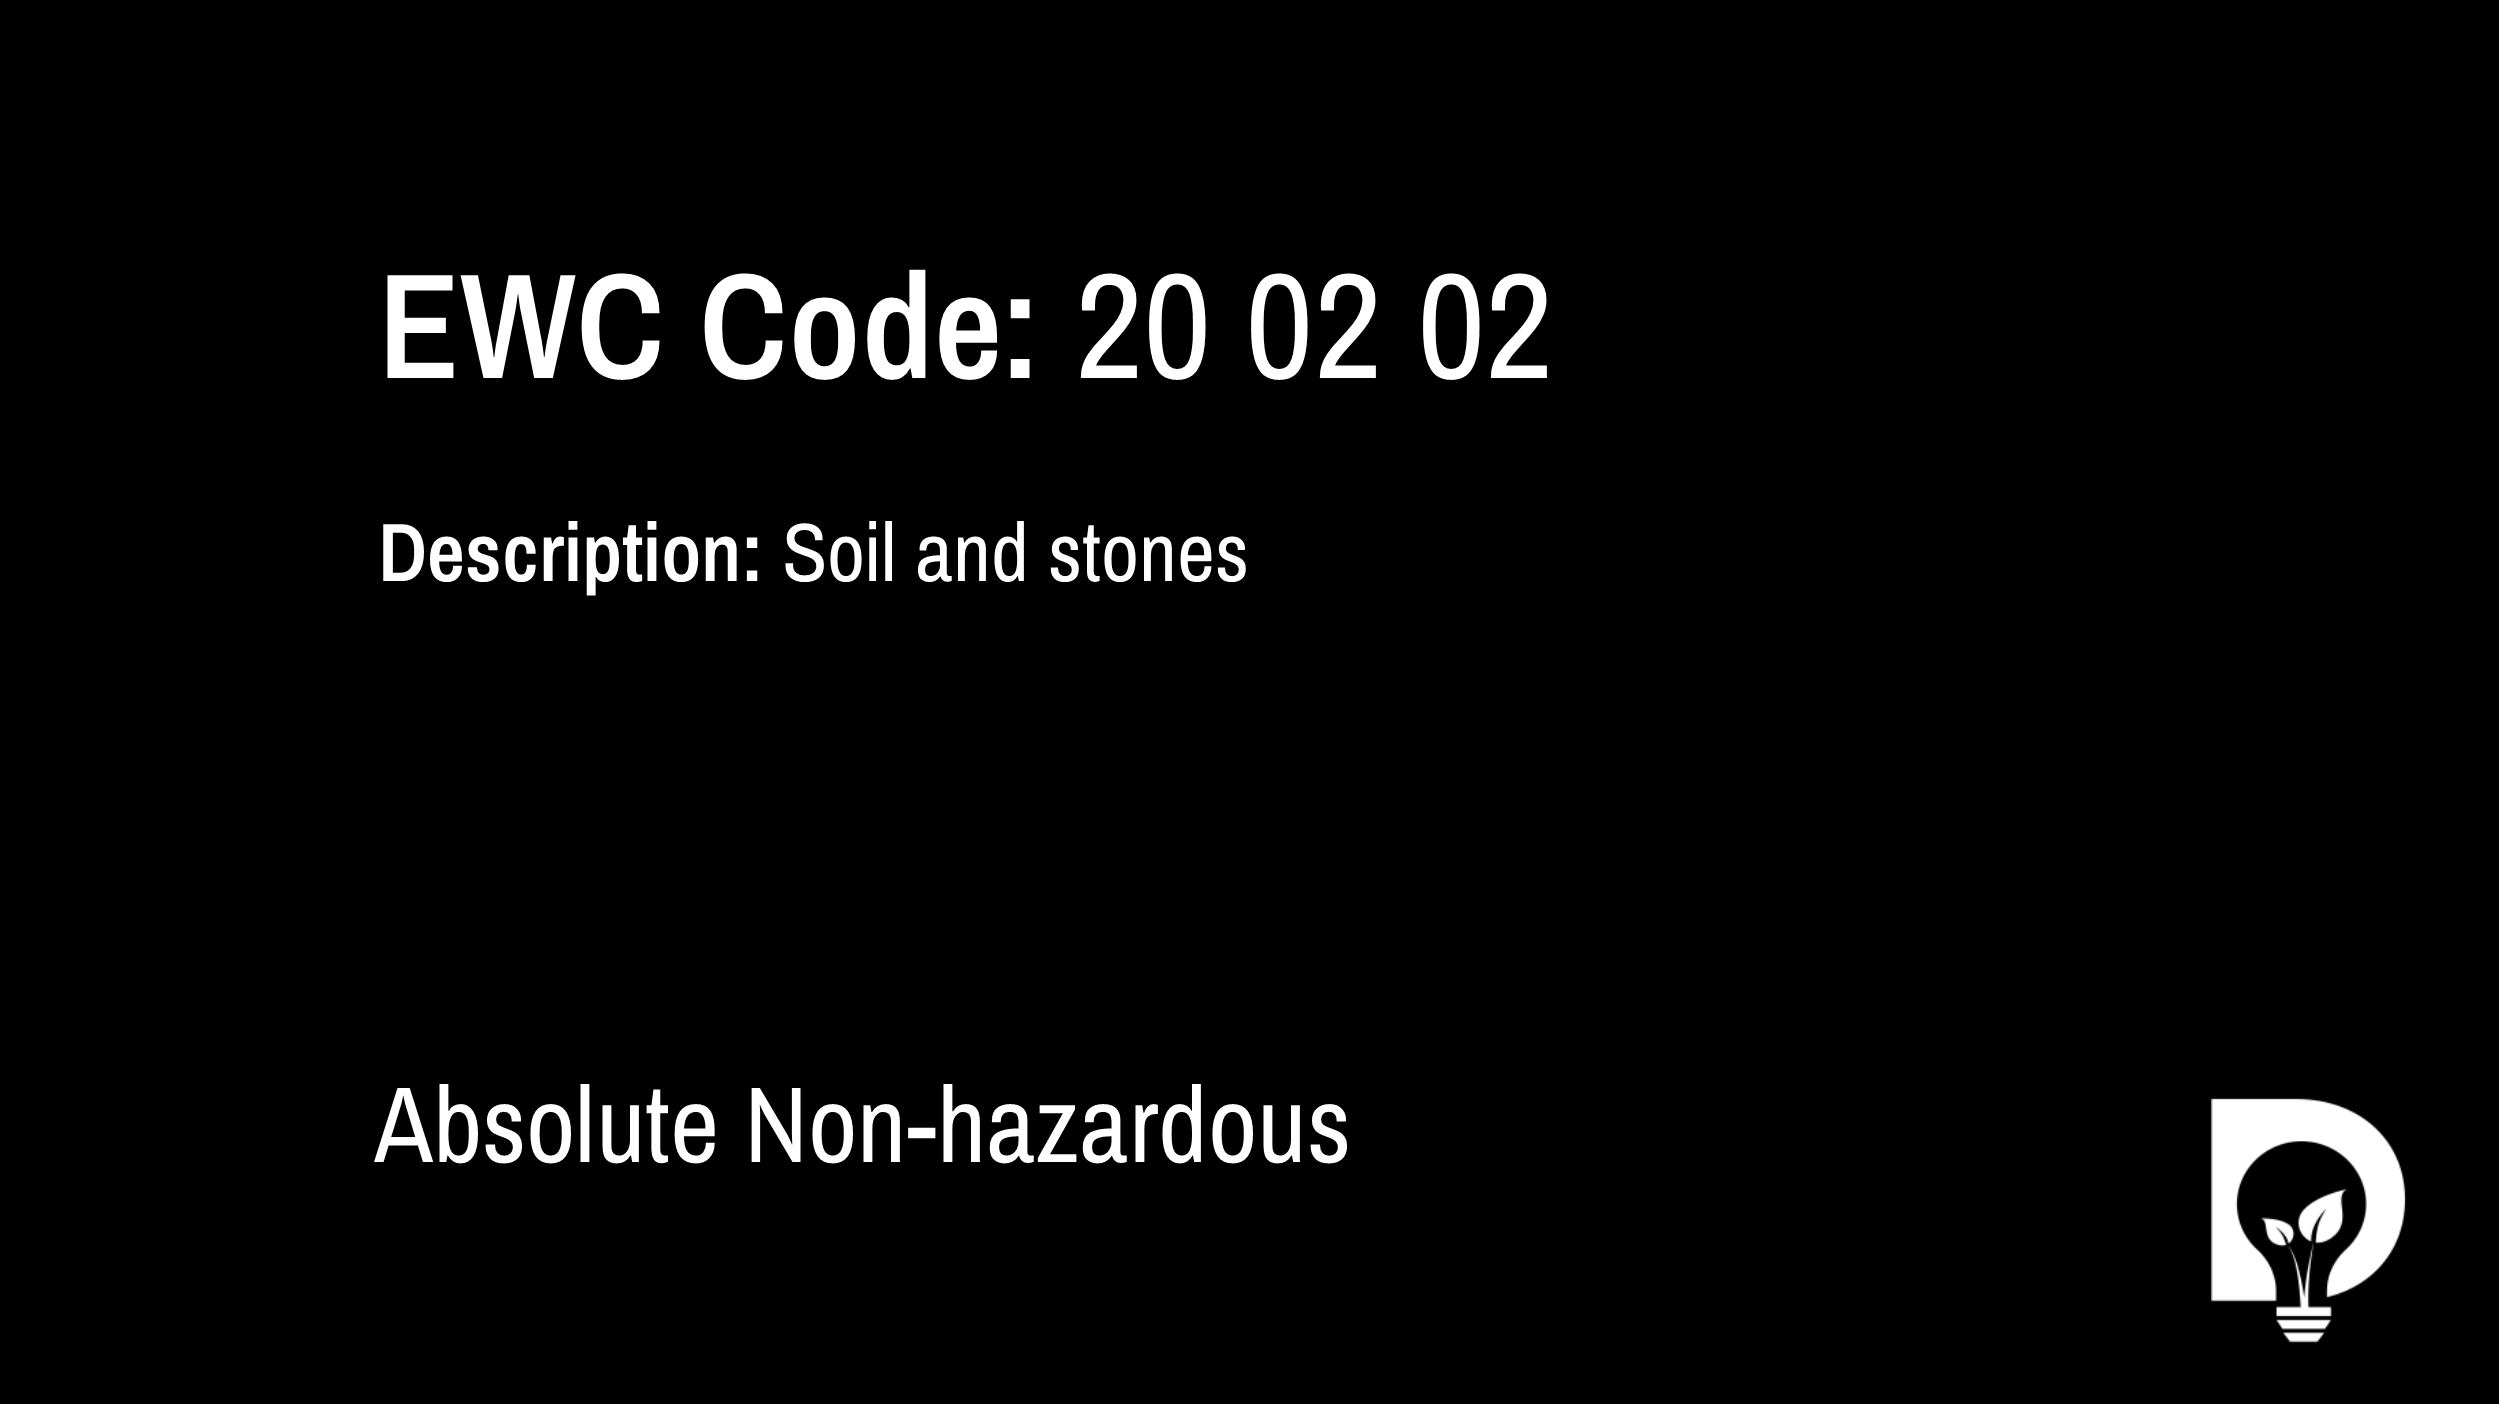 EWC Code: 20 02 02 - Soil and stones. Type: Absolute Non-hazardous. Image by Dsposal